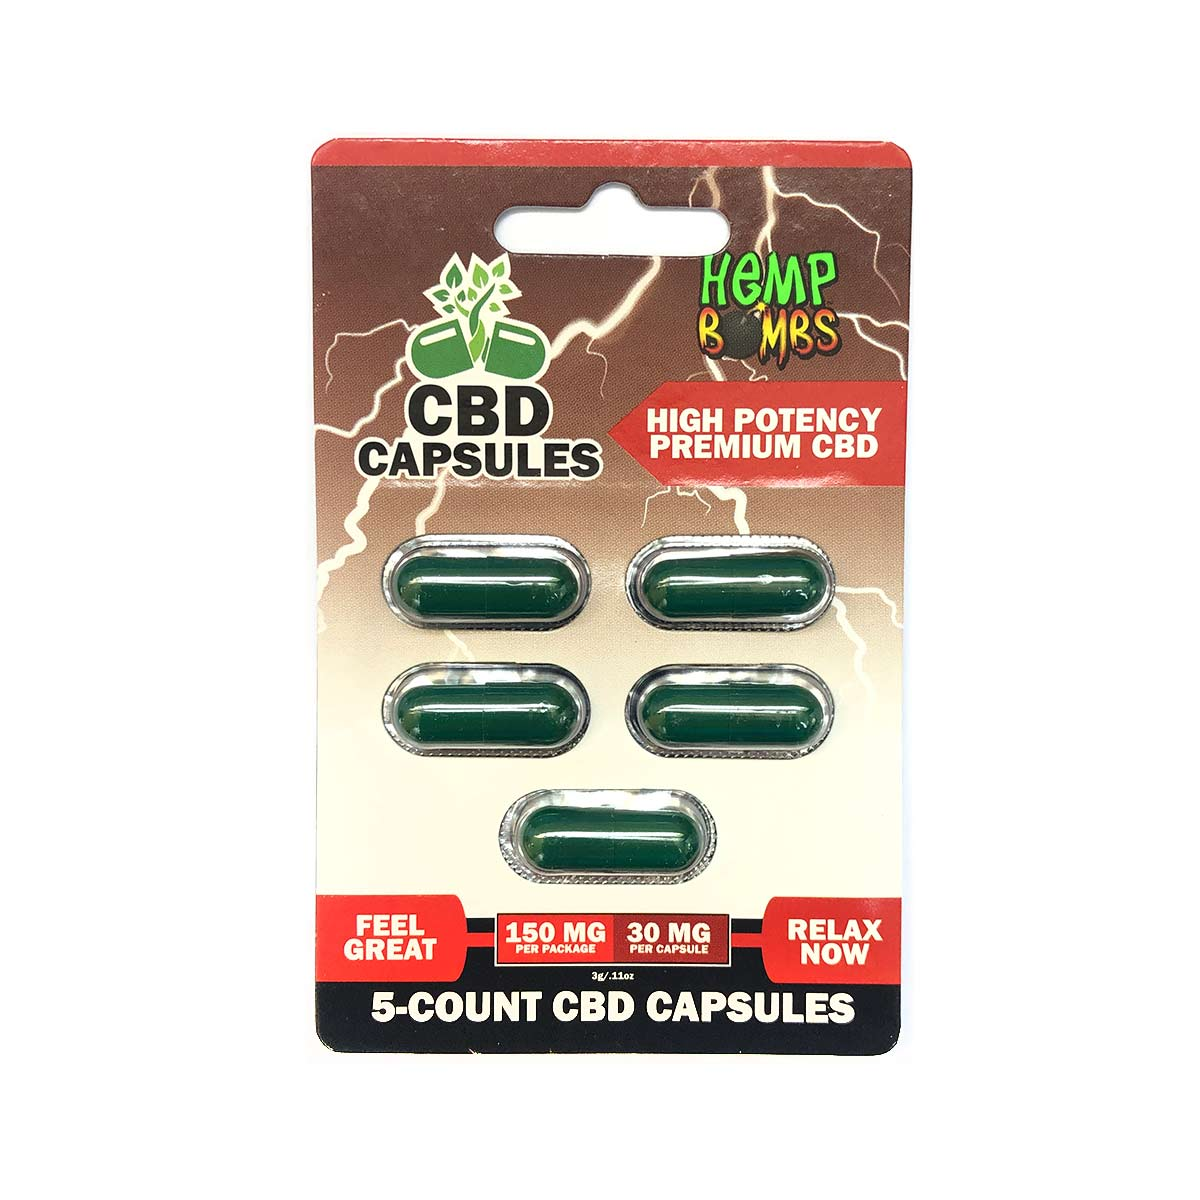 Hemp-Bombs,-CBD-Capsules,-High-Potency-Premium-CBD,-Full-Spectrum,-5-Count,-150mg-of-CBD